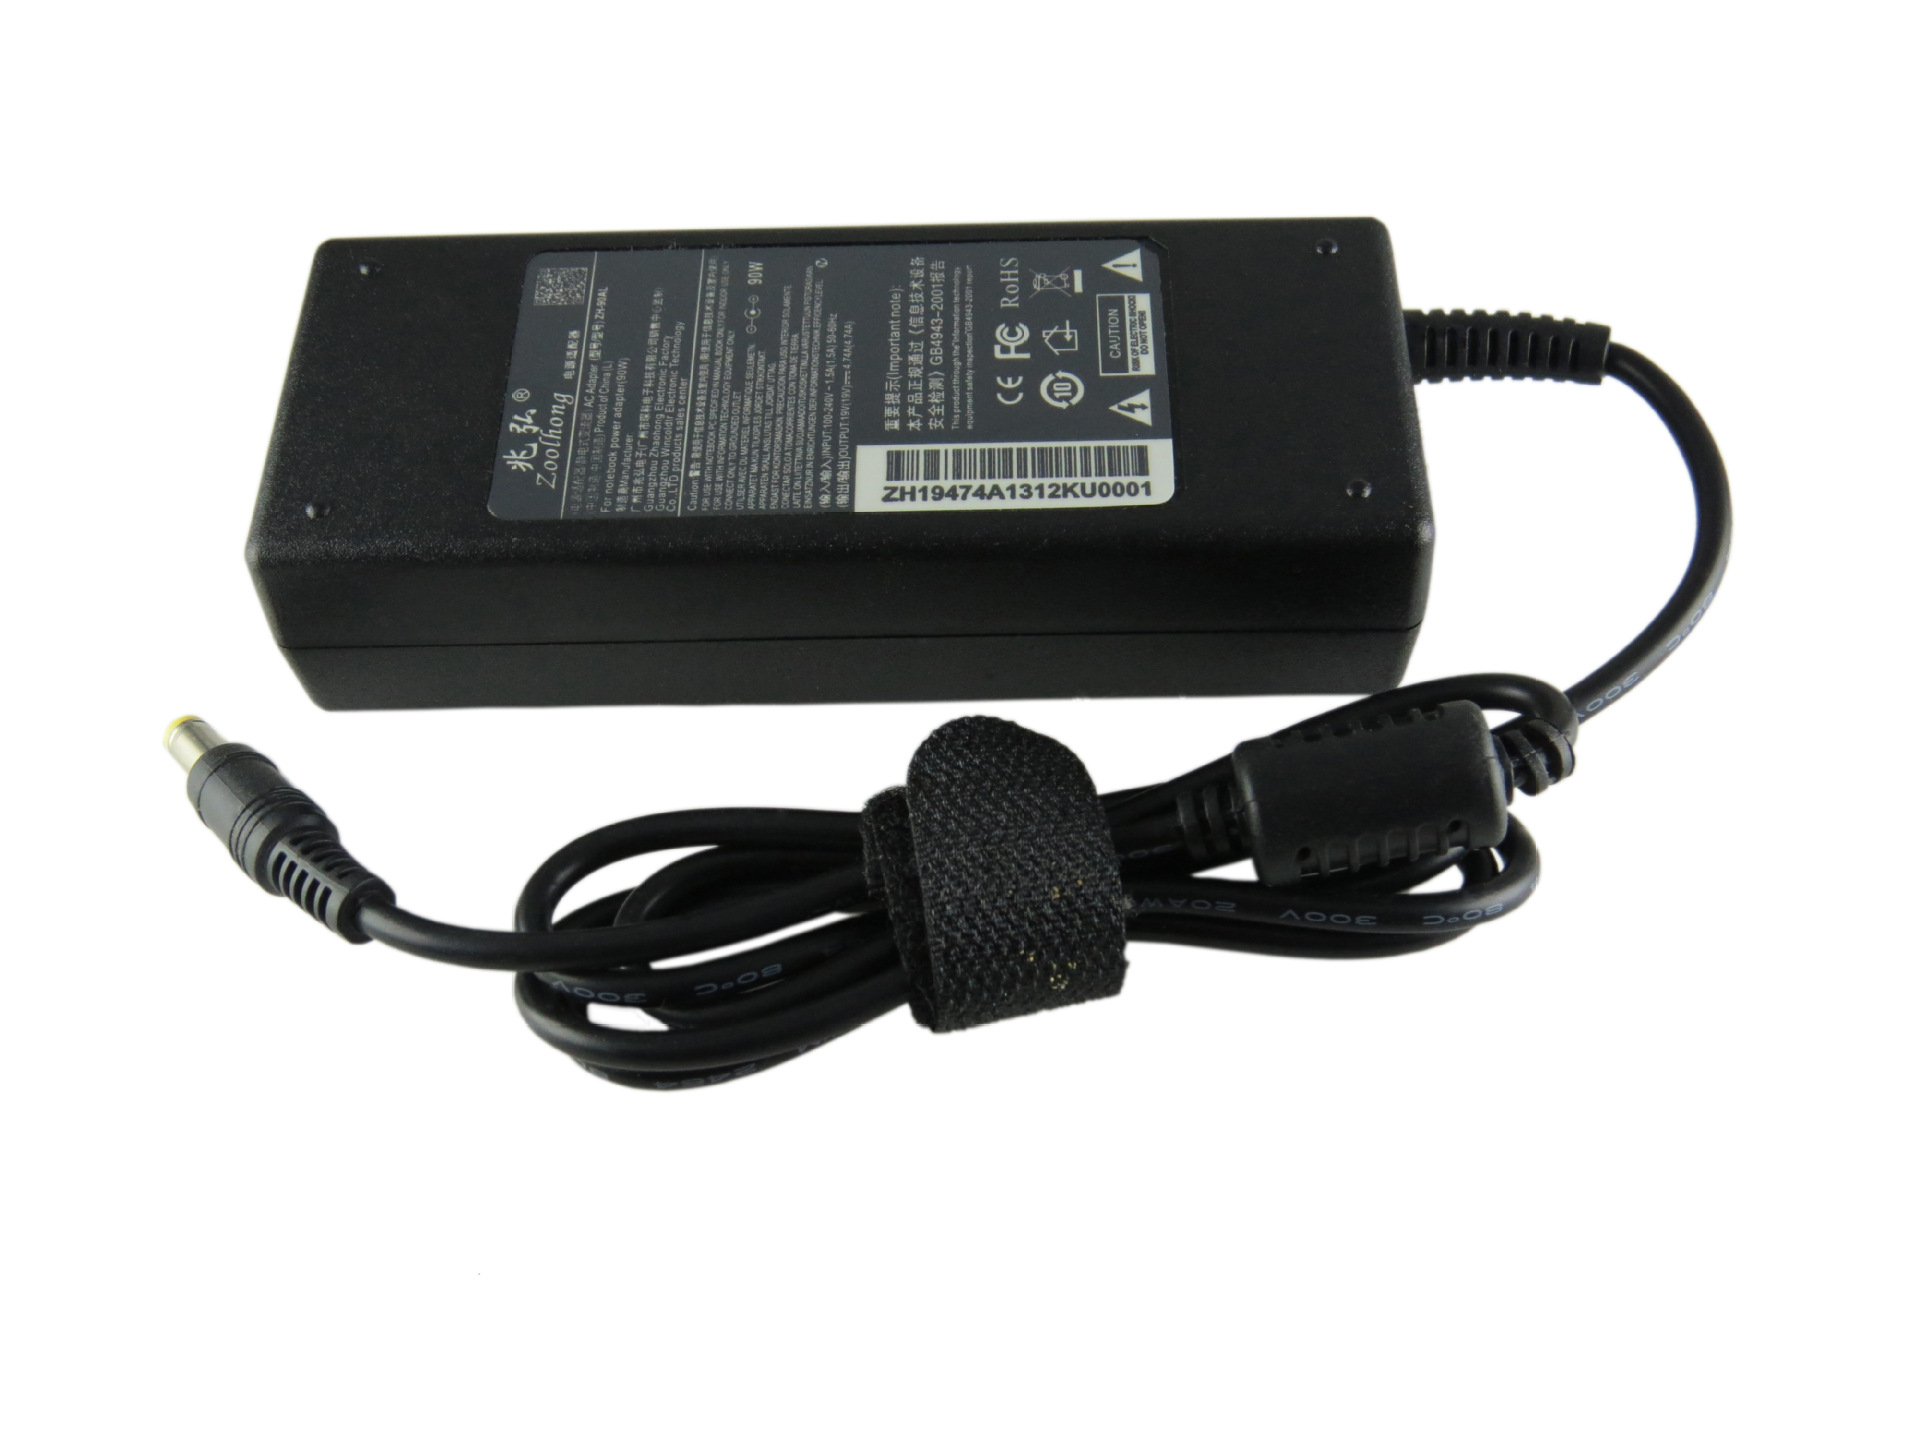 19V 4.74A 90W Laptop Ac Power Adapter Pengecas Untuk Acer Aspire 4710G 4720G 4730 492Ac 3020 5020 8200 4910 5551 5552 5.5Mm * 1.7Mm